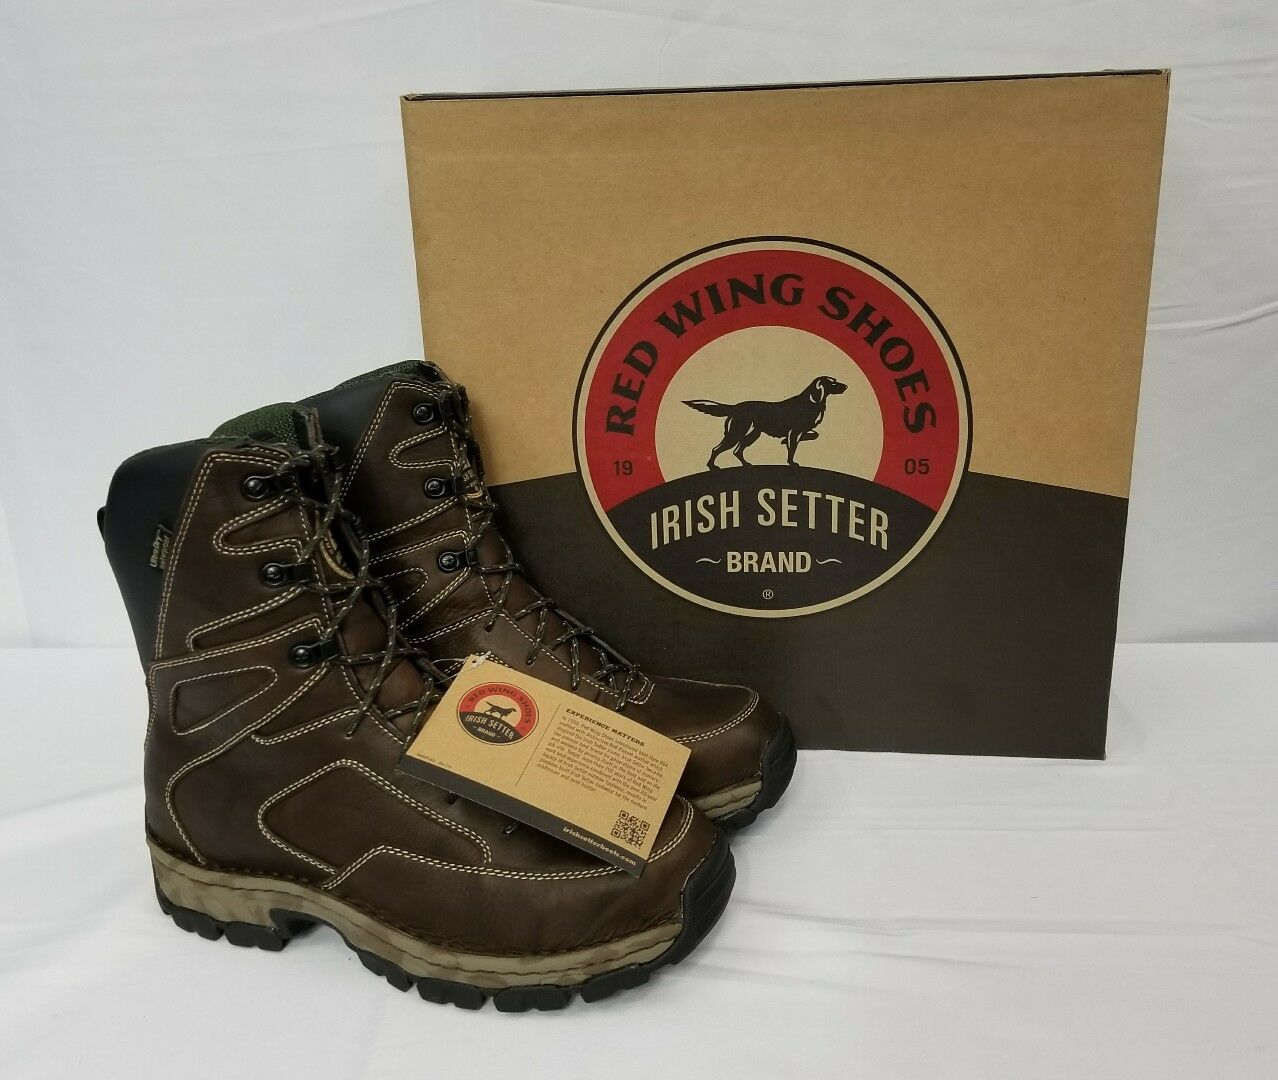 Red Wing Shoes Irish Setter Havoc XT 810 hunting boots.  Men's size 9 W